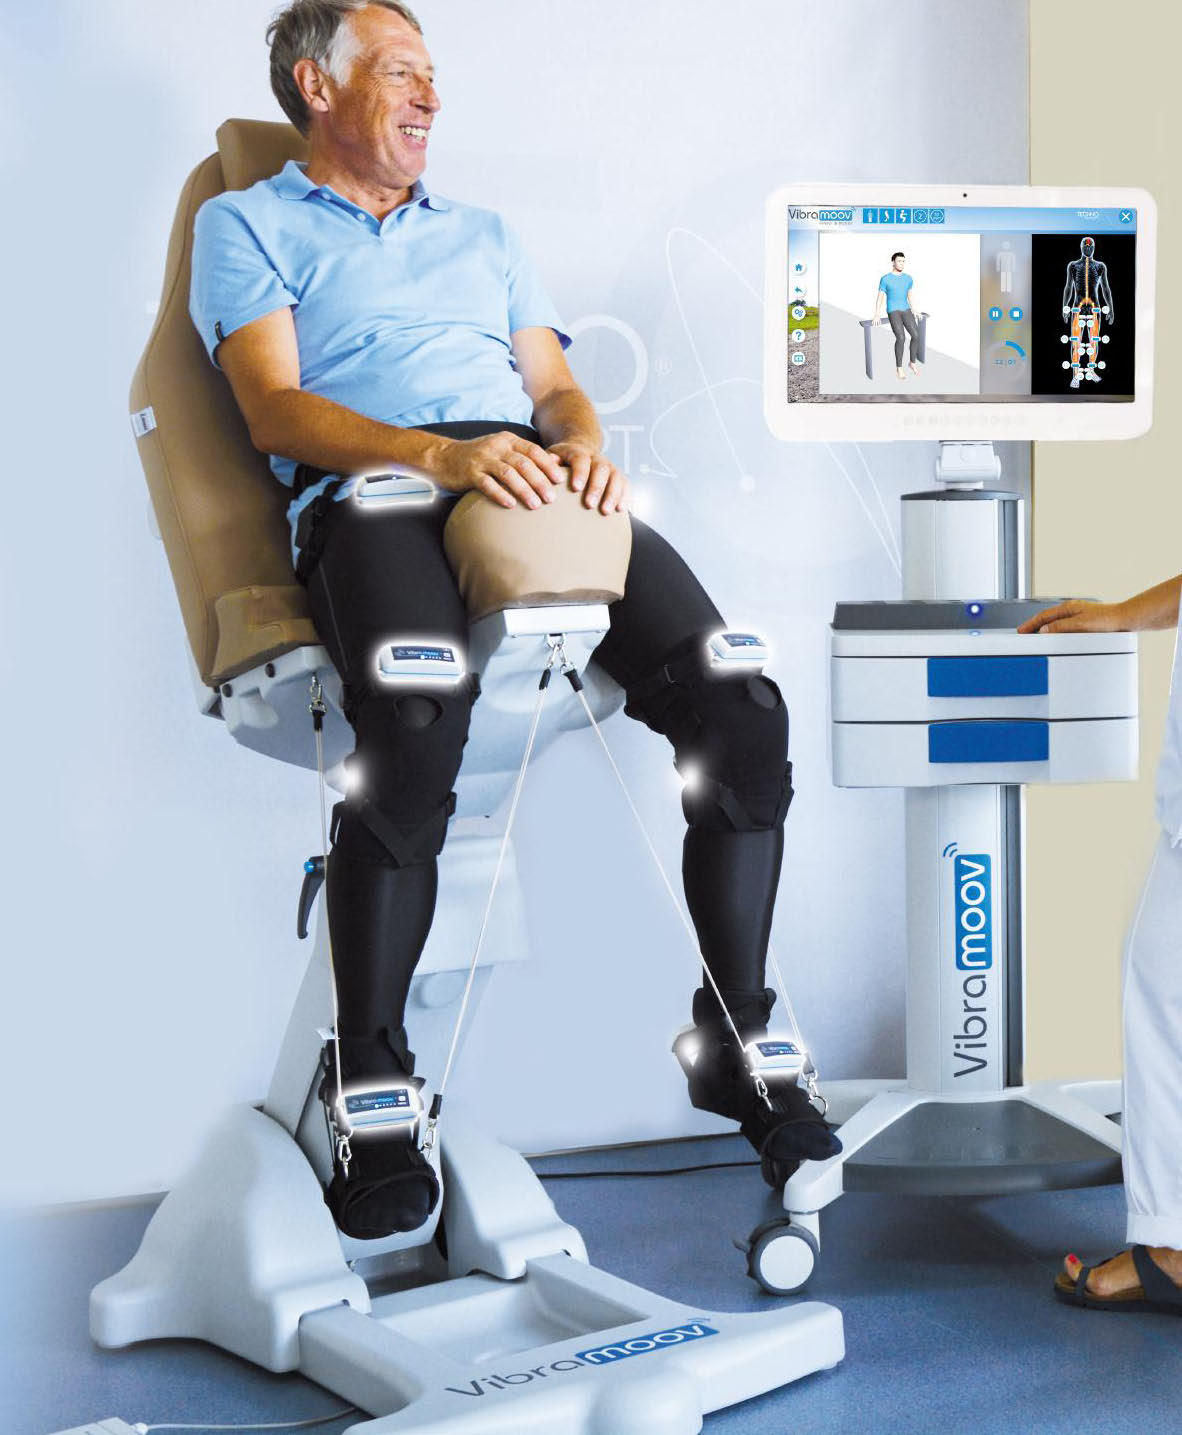 Vibramoov - Functional Proprioceptive Stimulation applied to the lower limbs